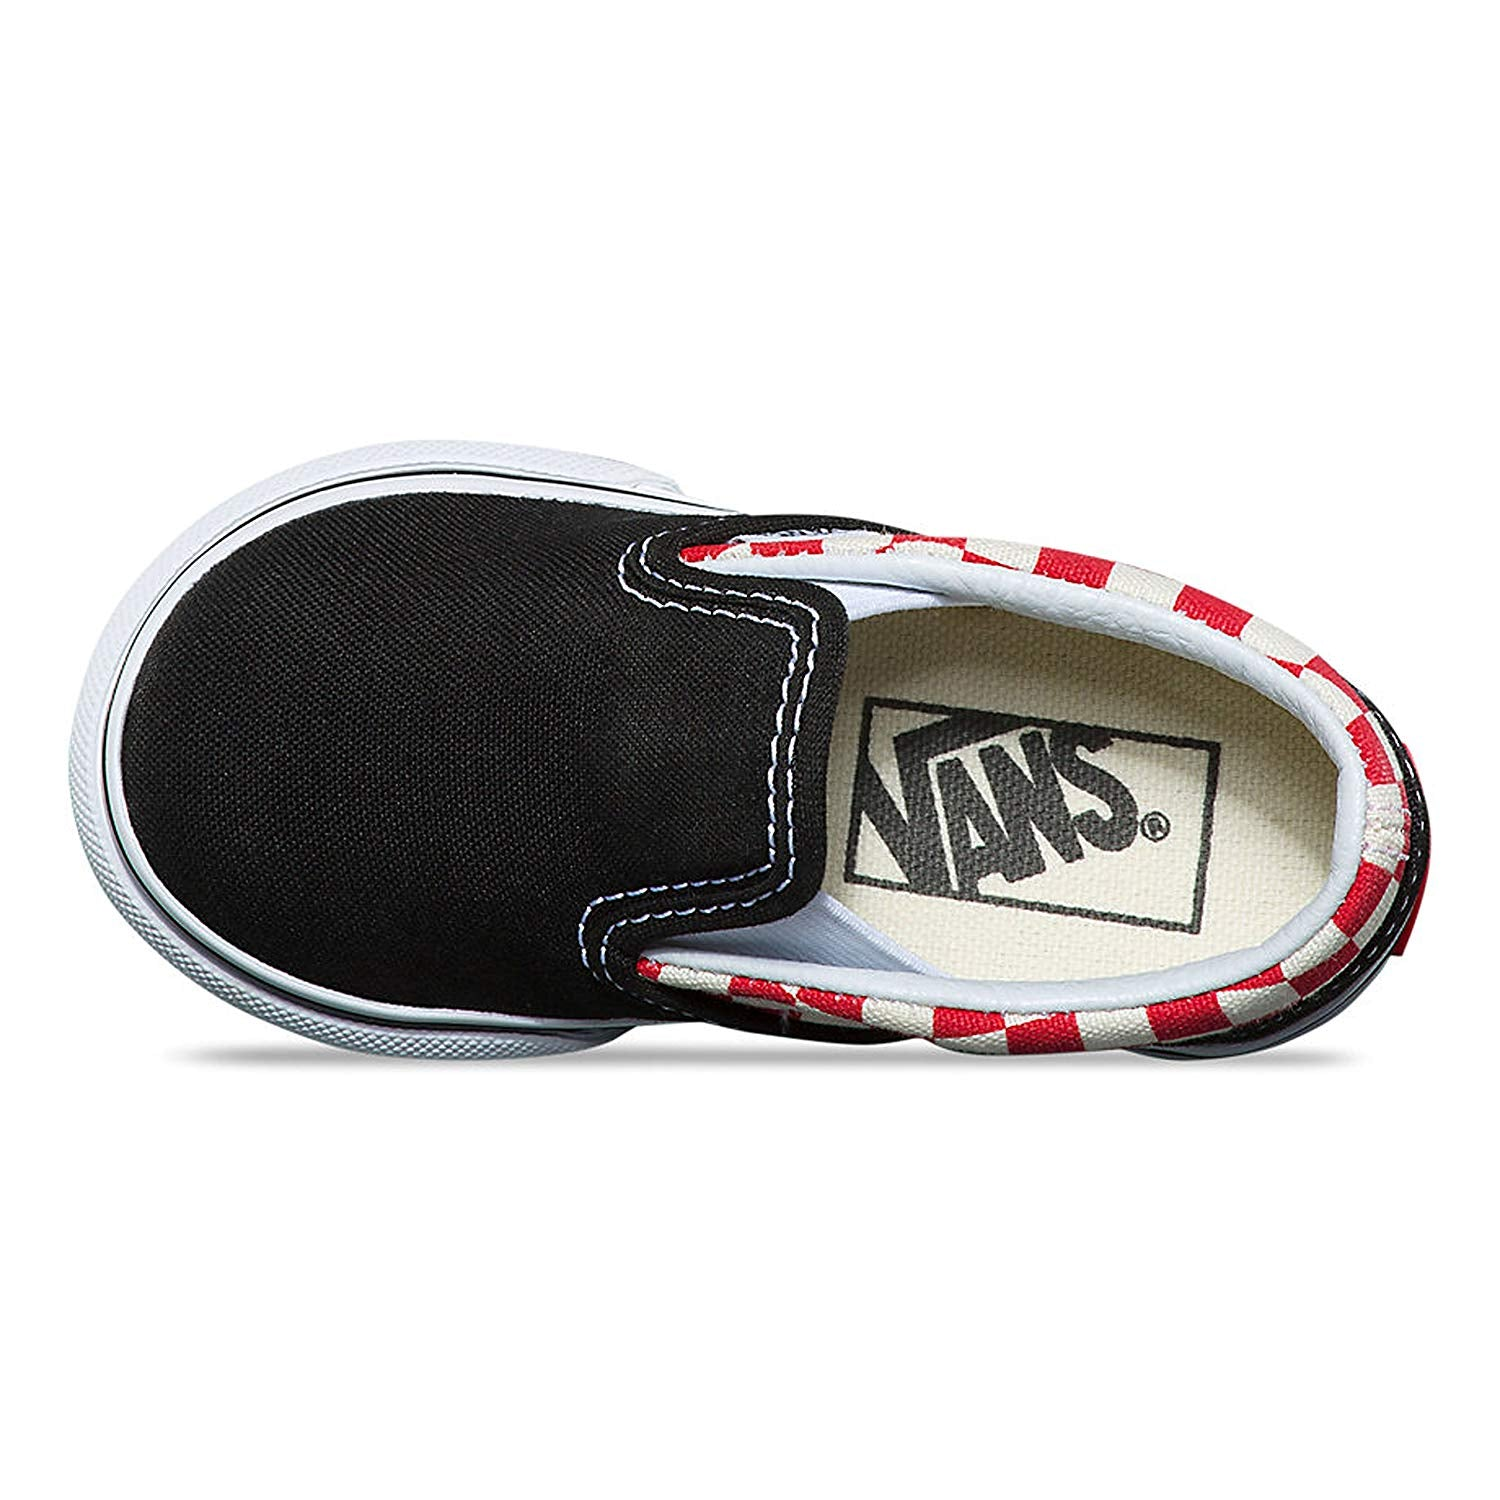 Vans Classic Slip On Checkerboard Black/Red Skate Shoes 9.5 Toddler